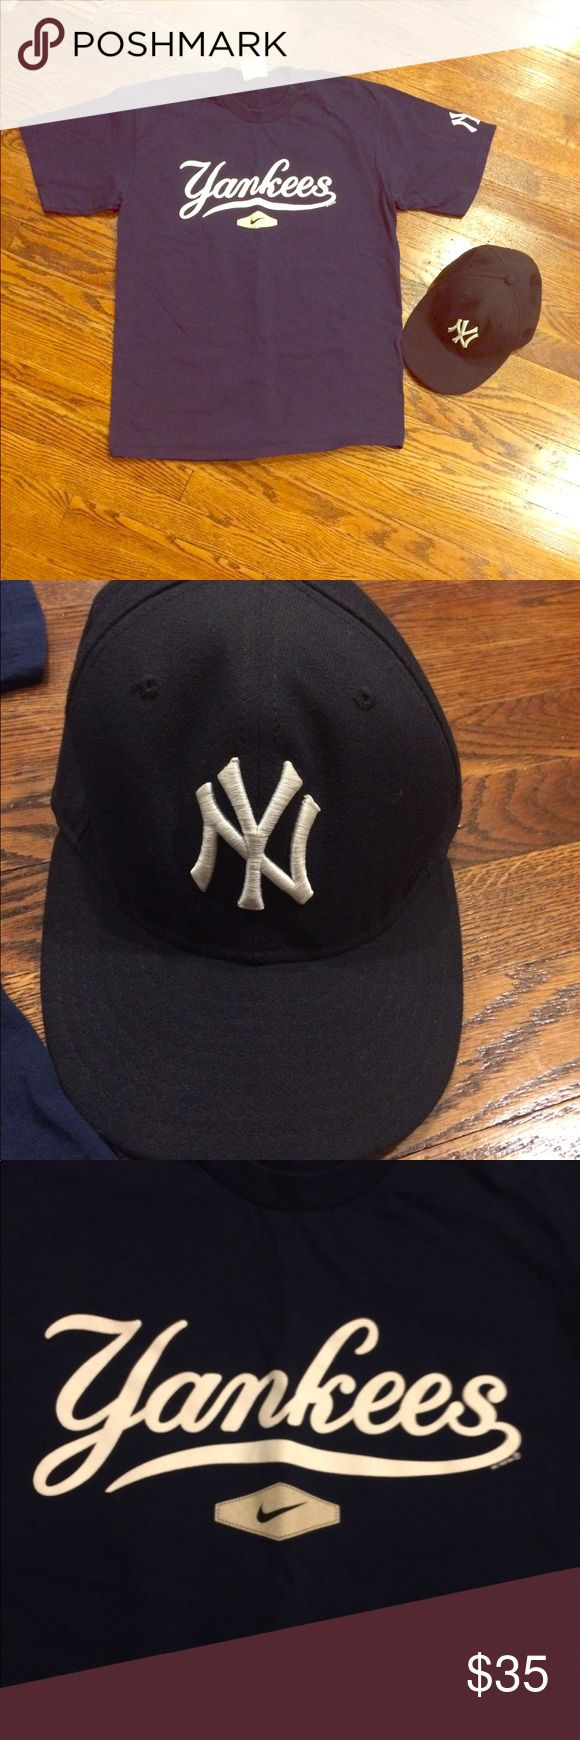 Nike Yankees shirt and hat bundle ⚾️2 for the price of 1! You get the Nike Yankees t-shirt, size M, like new. (Navy & white) and you get the NWOT Yankees fitted hat. It says size  6 7/8 and still has stickers on it. (Navy & white). This would make a nice gift also if you know a Yankees fan!⚾️ Nike Shirts Tees - Short Sleeve